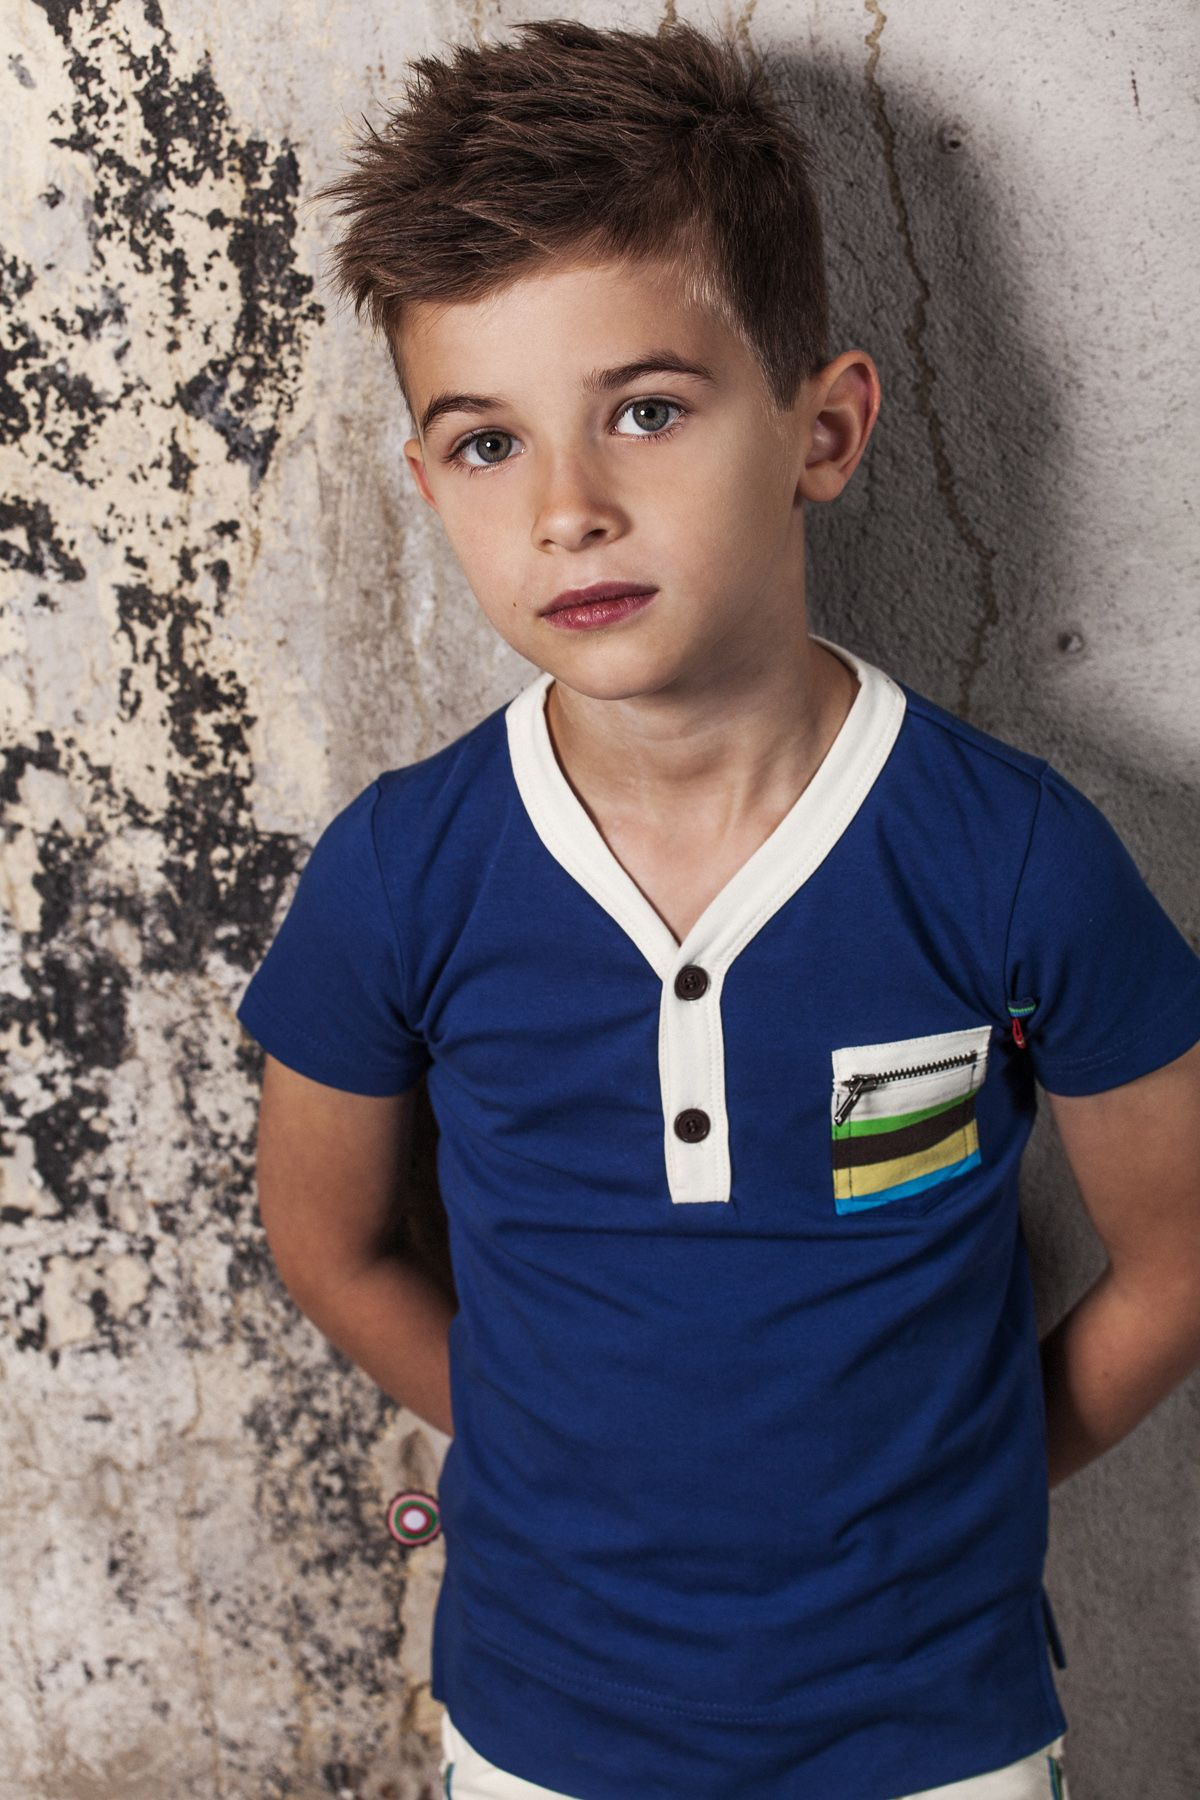 43 Trendy And Cute Boys Hairstyles For 2019 Kids Pinterest Boy